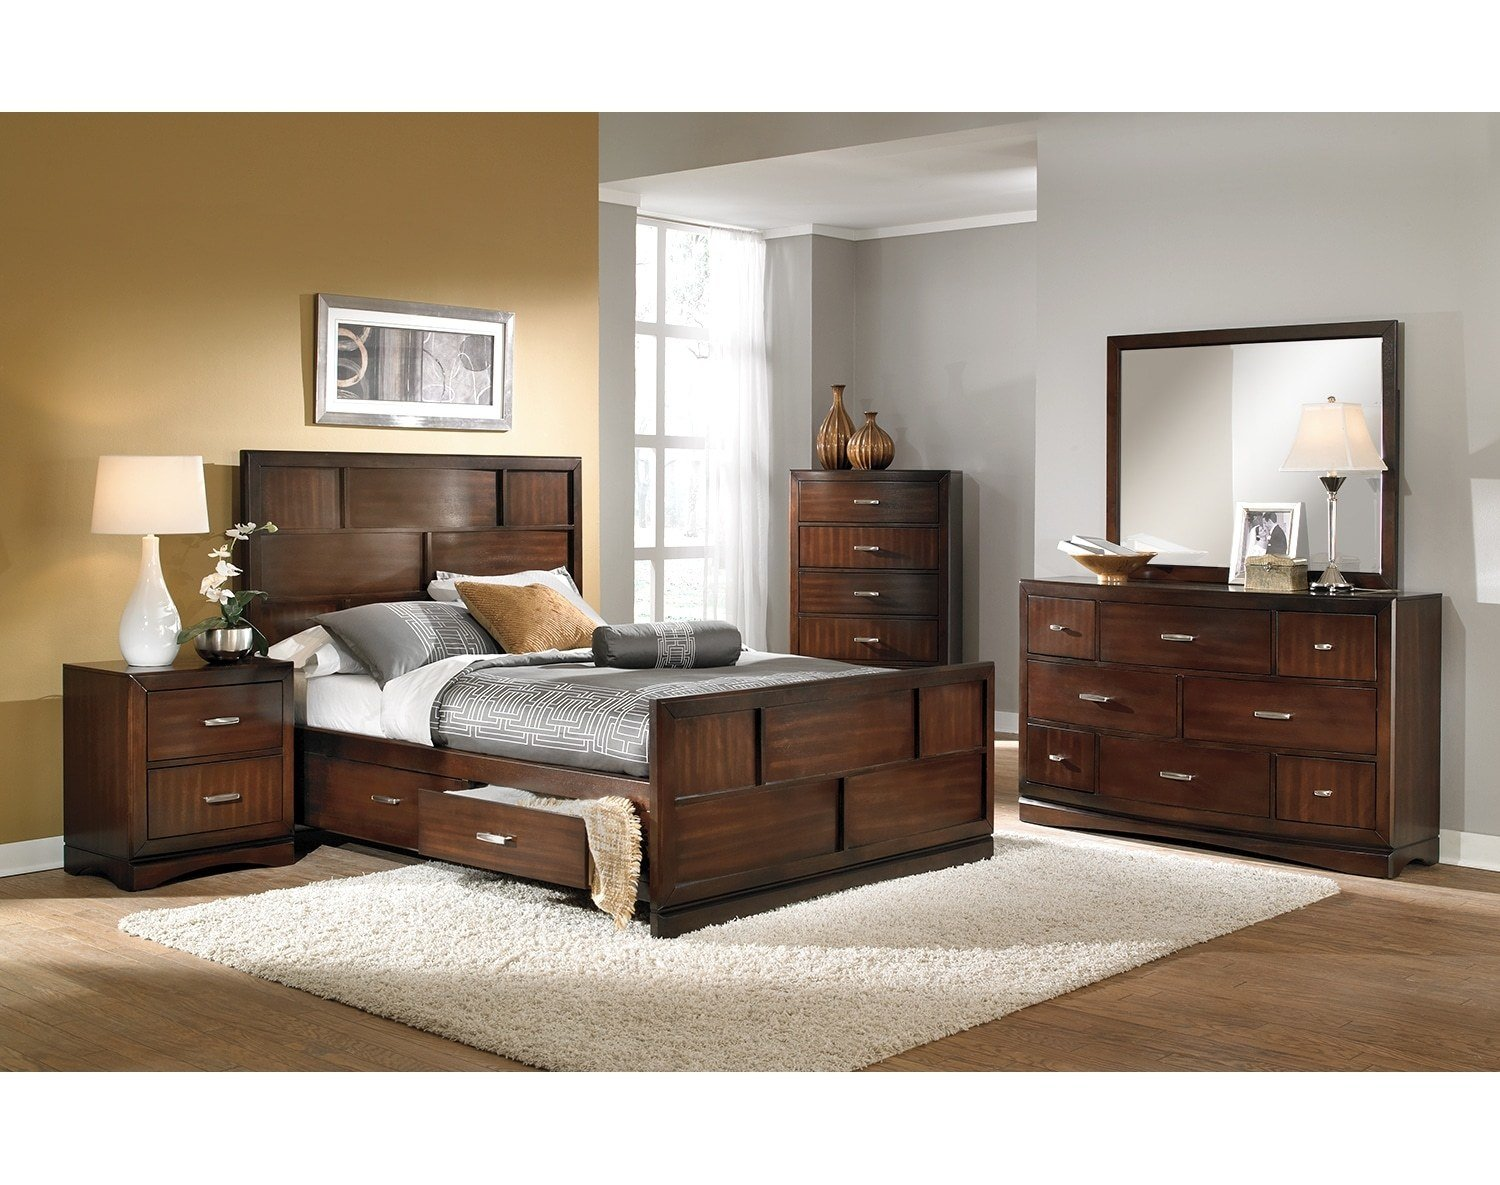 Best The Toronto Collection Pecan Value City Furniture And With Pictures